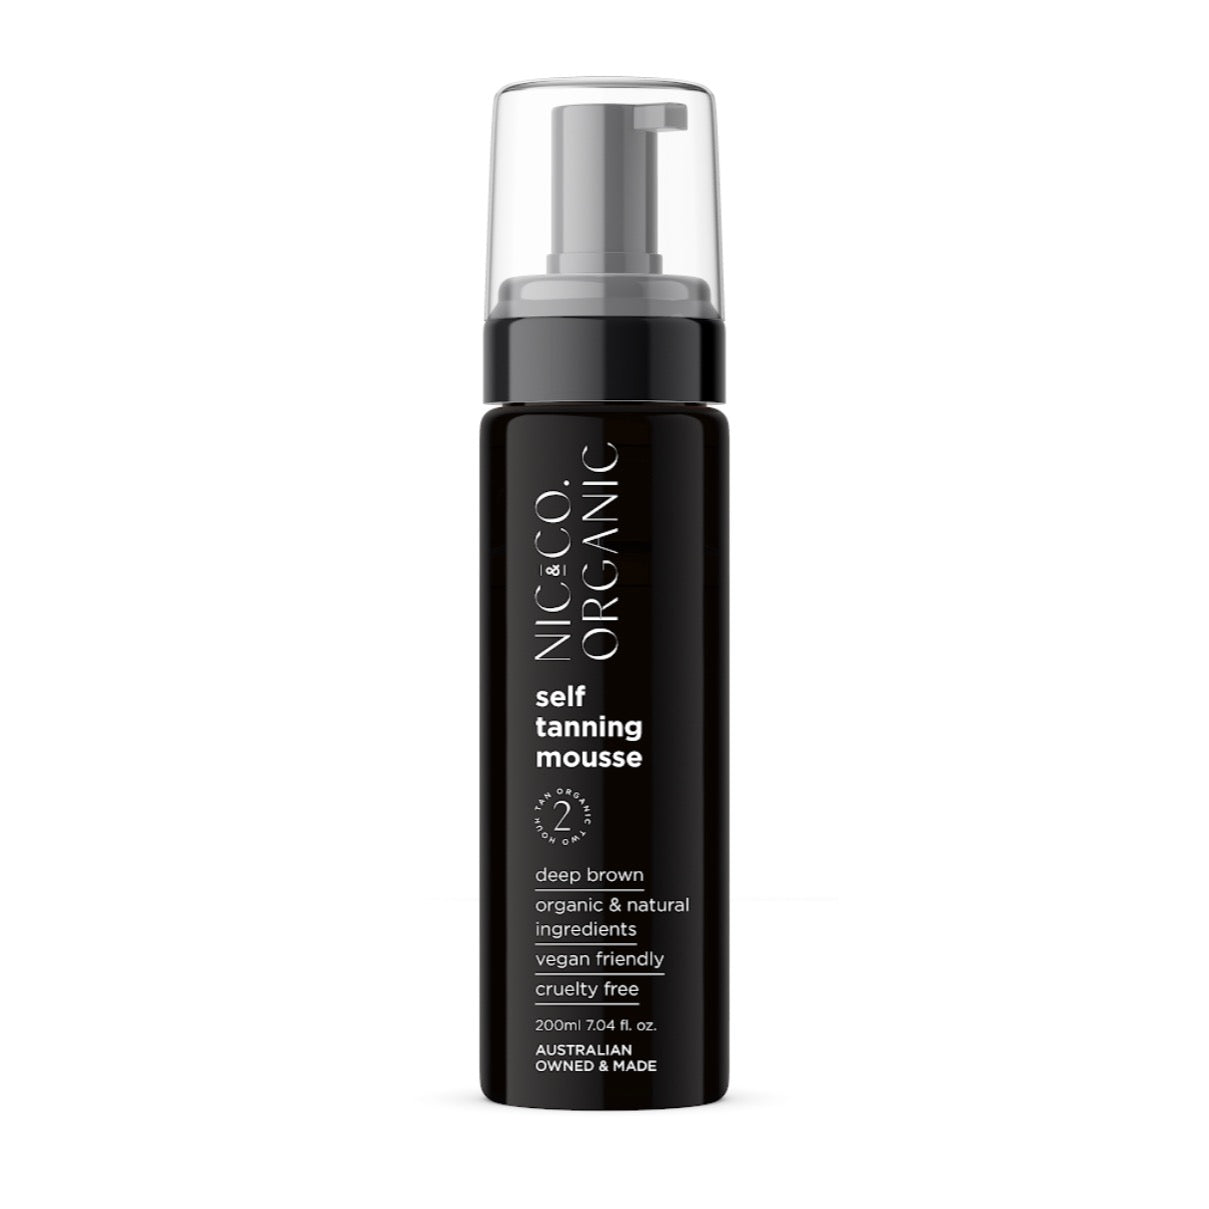 Nic & Co organic self tanning mousse elsie and florence